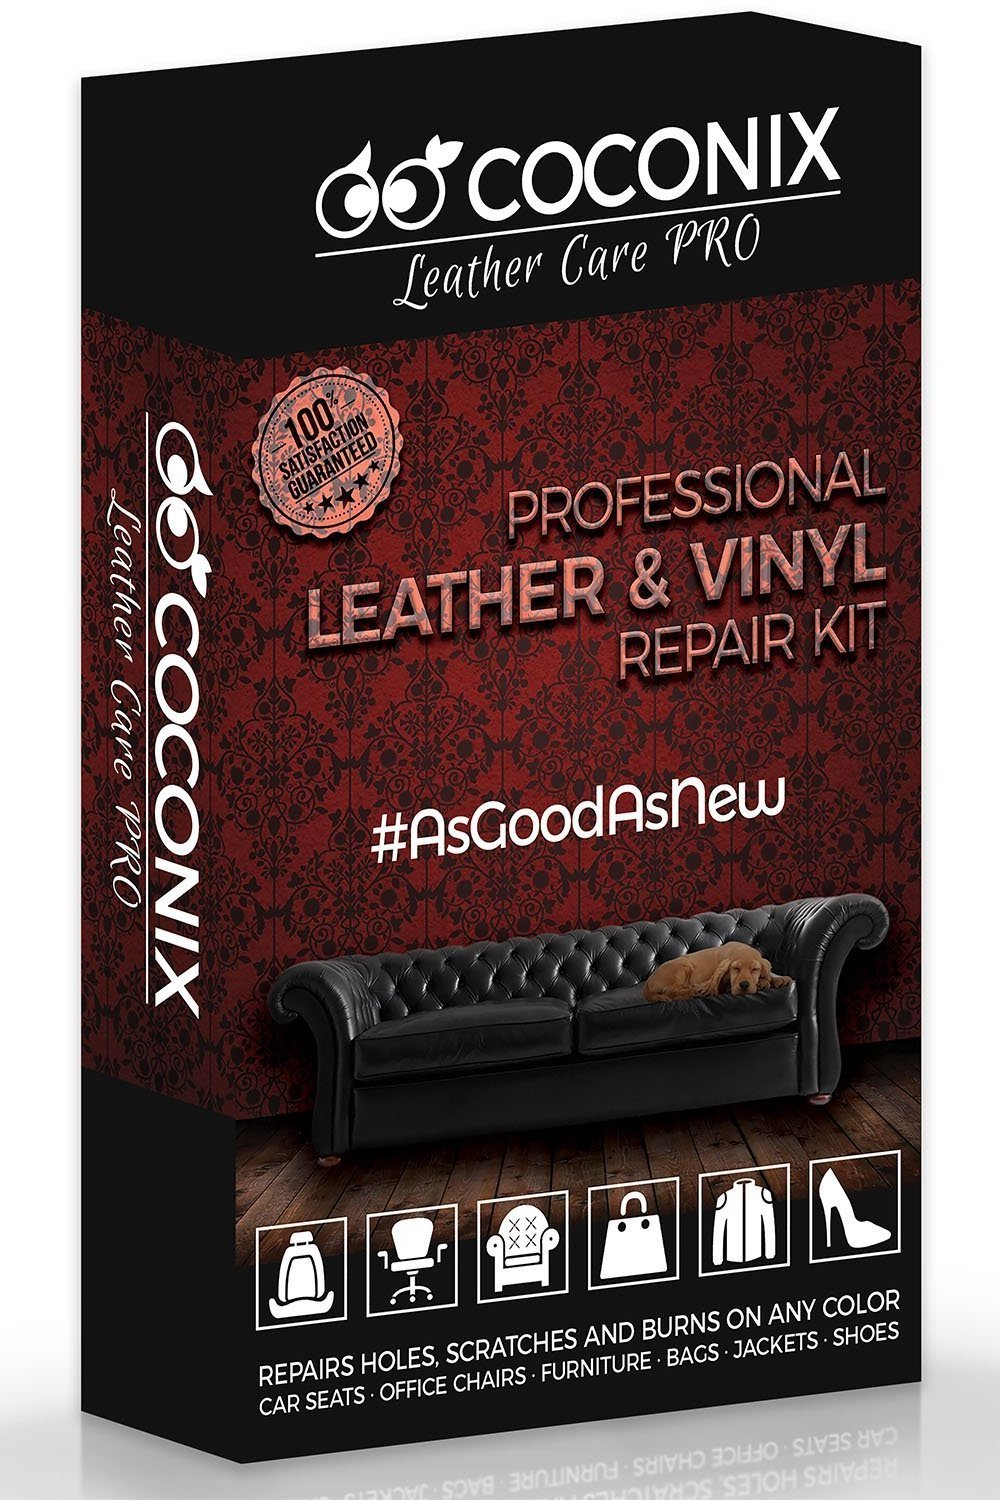 Coconix Upholstery, Vinyl and Leather Repair Kit – Furniture, Couch, Sofa, Boat, Car Seat, Jacket Restorer – Super Easy Instructions to Restore and Match Any Color Genuine, Italian, Bonded, Bycast, PU